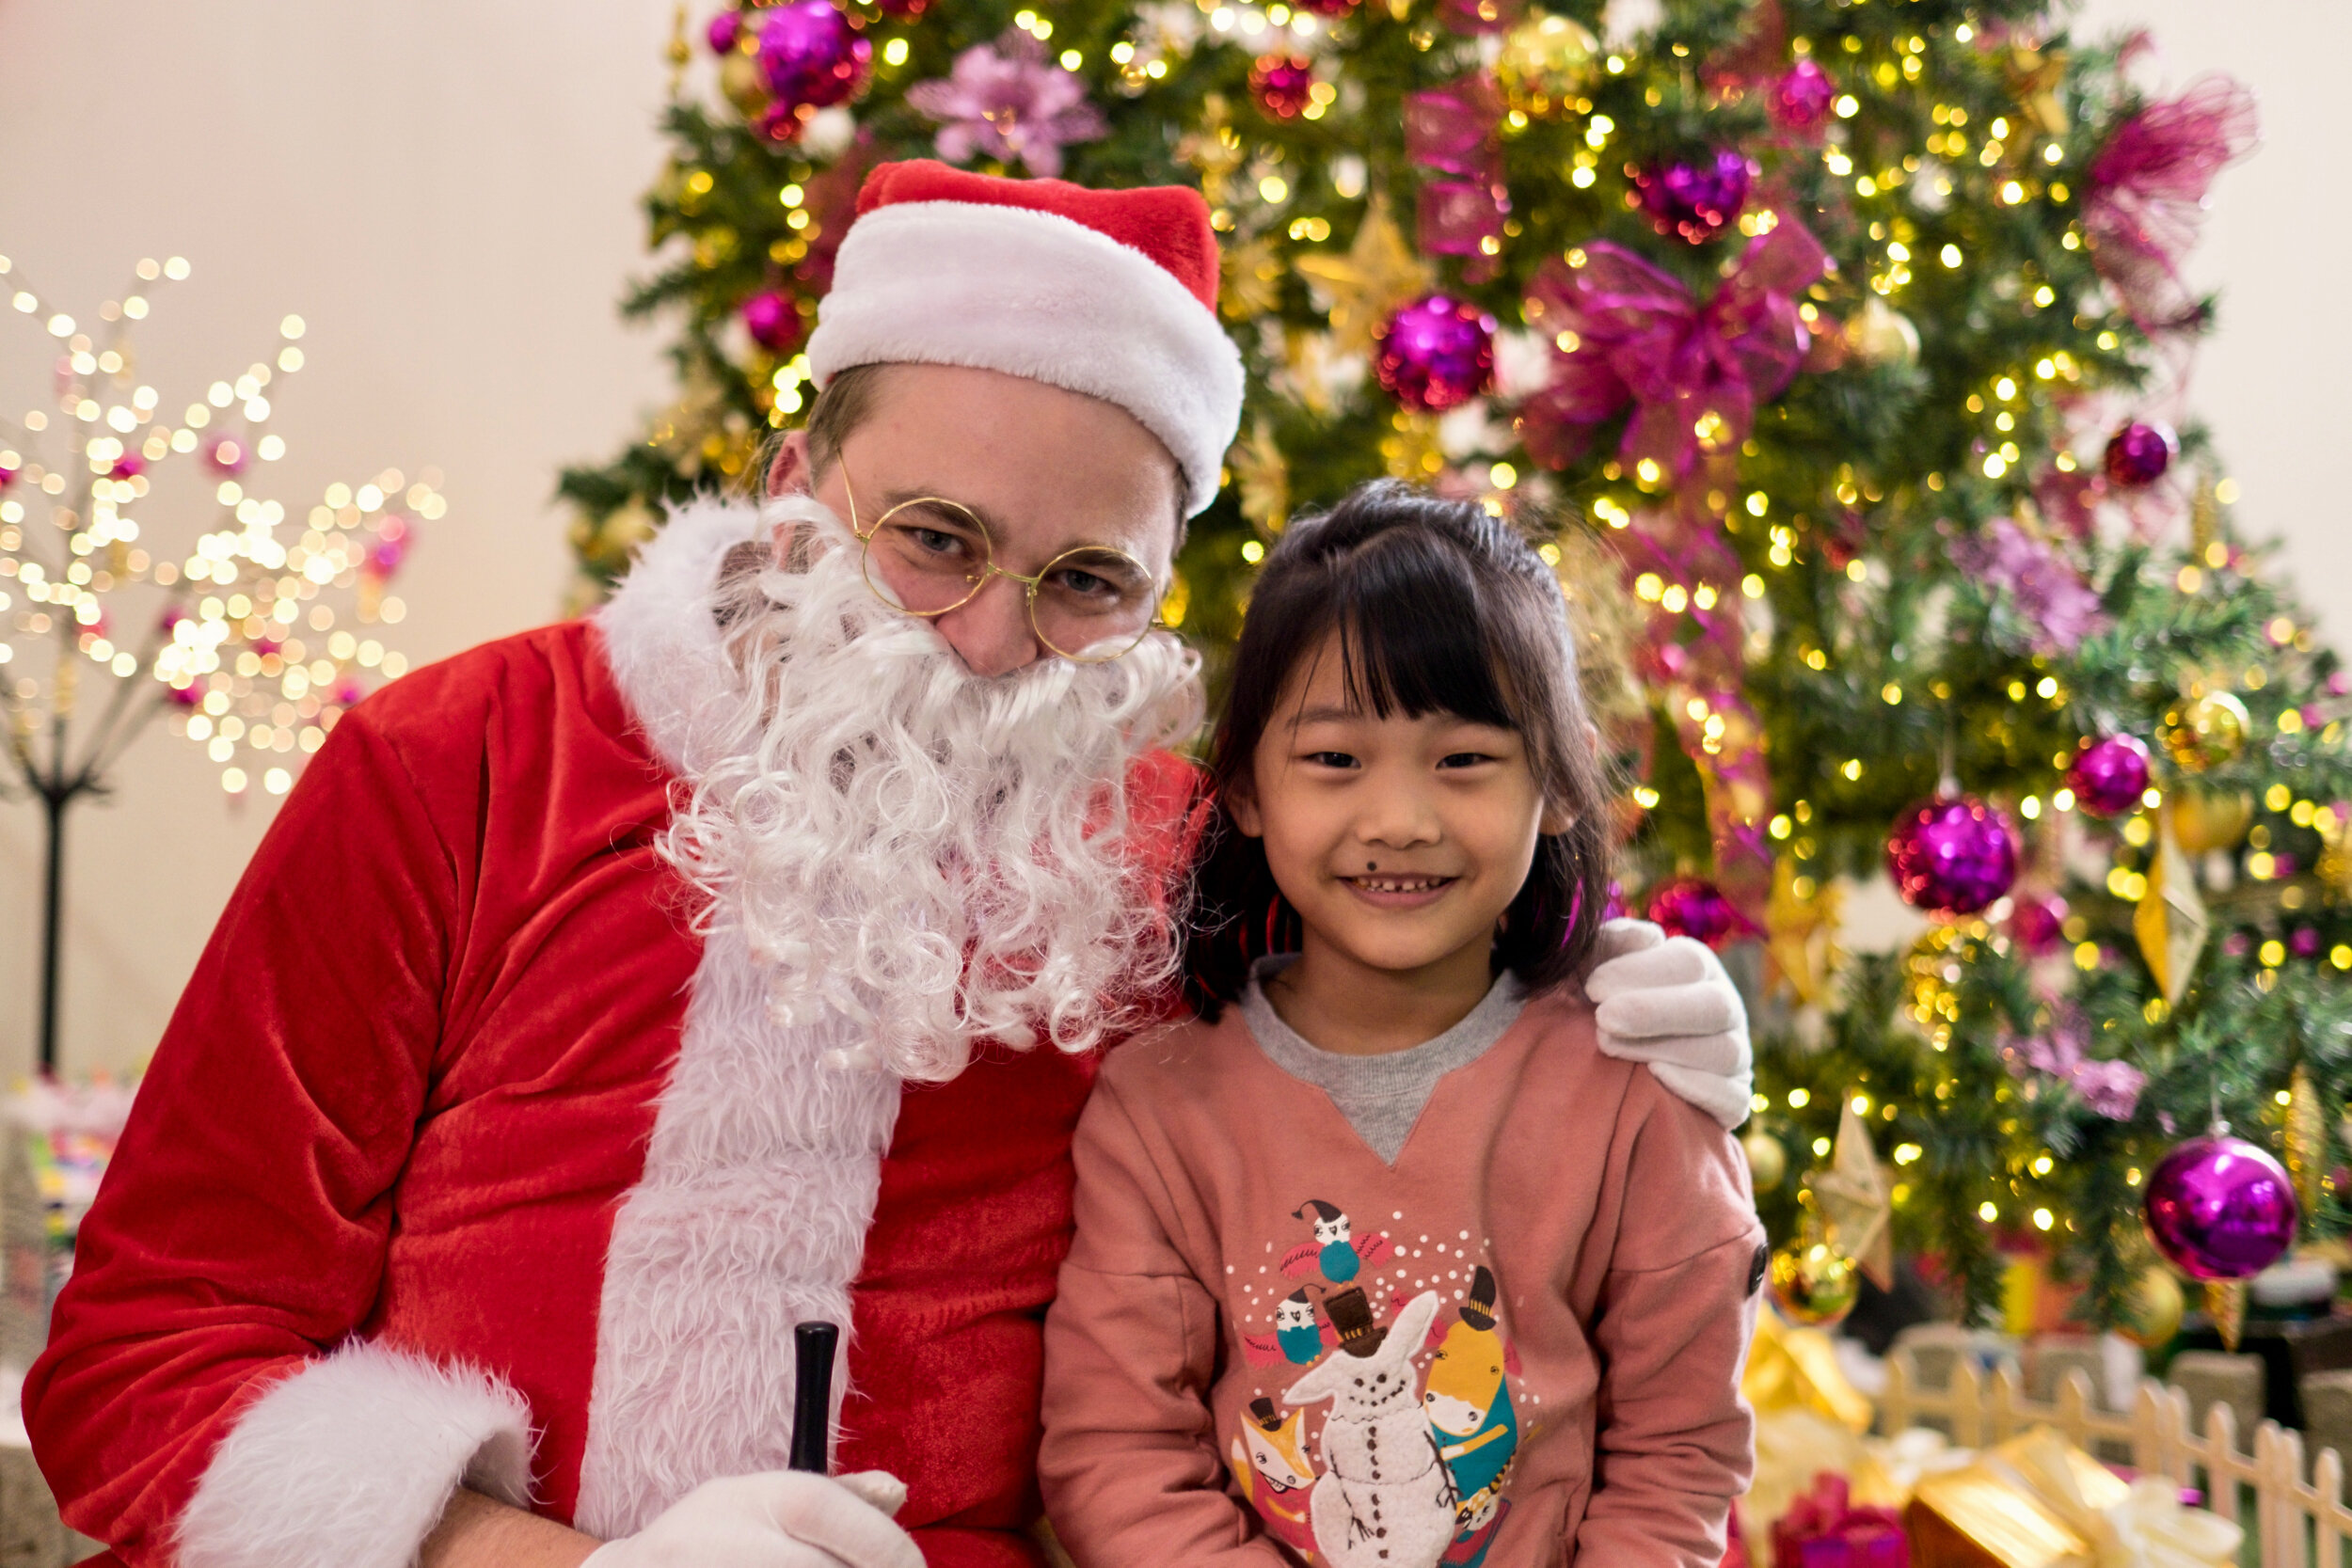 Photoshoot with Santa Clause-943.jpg